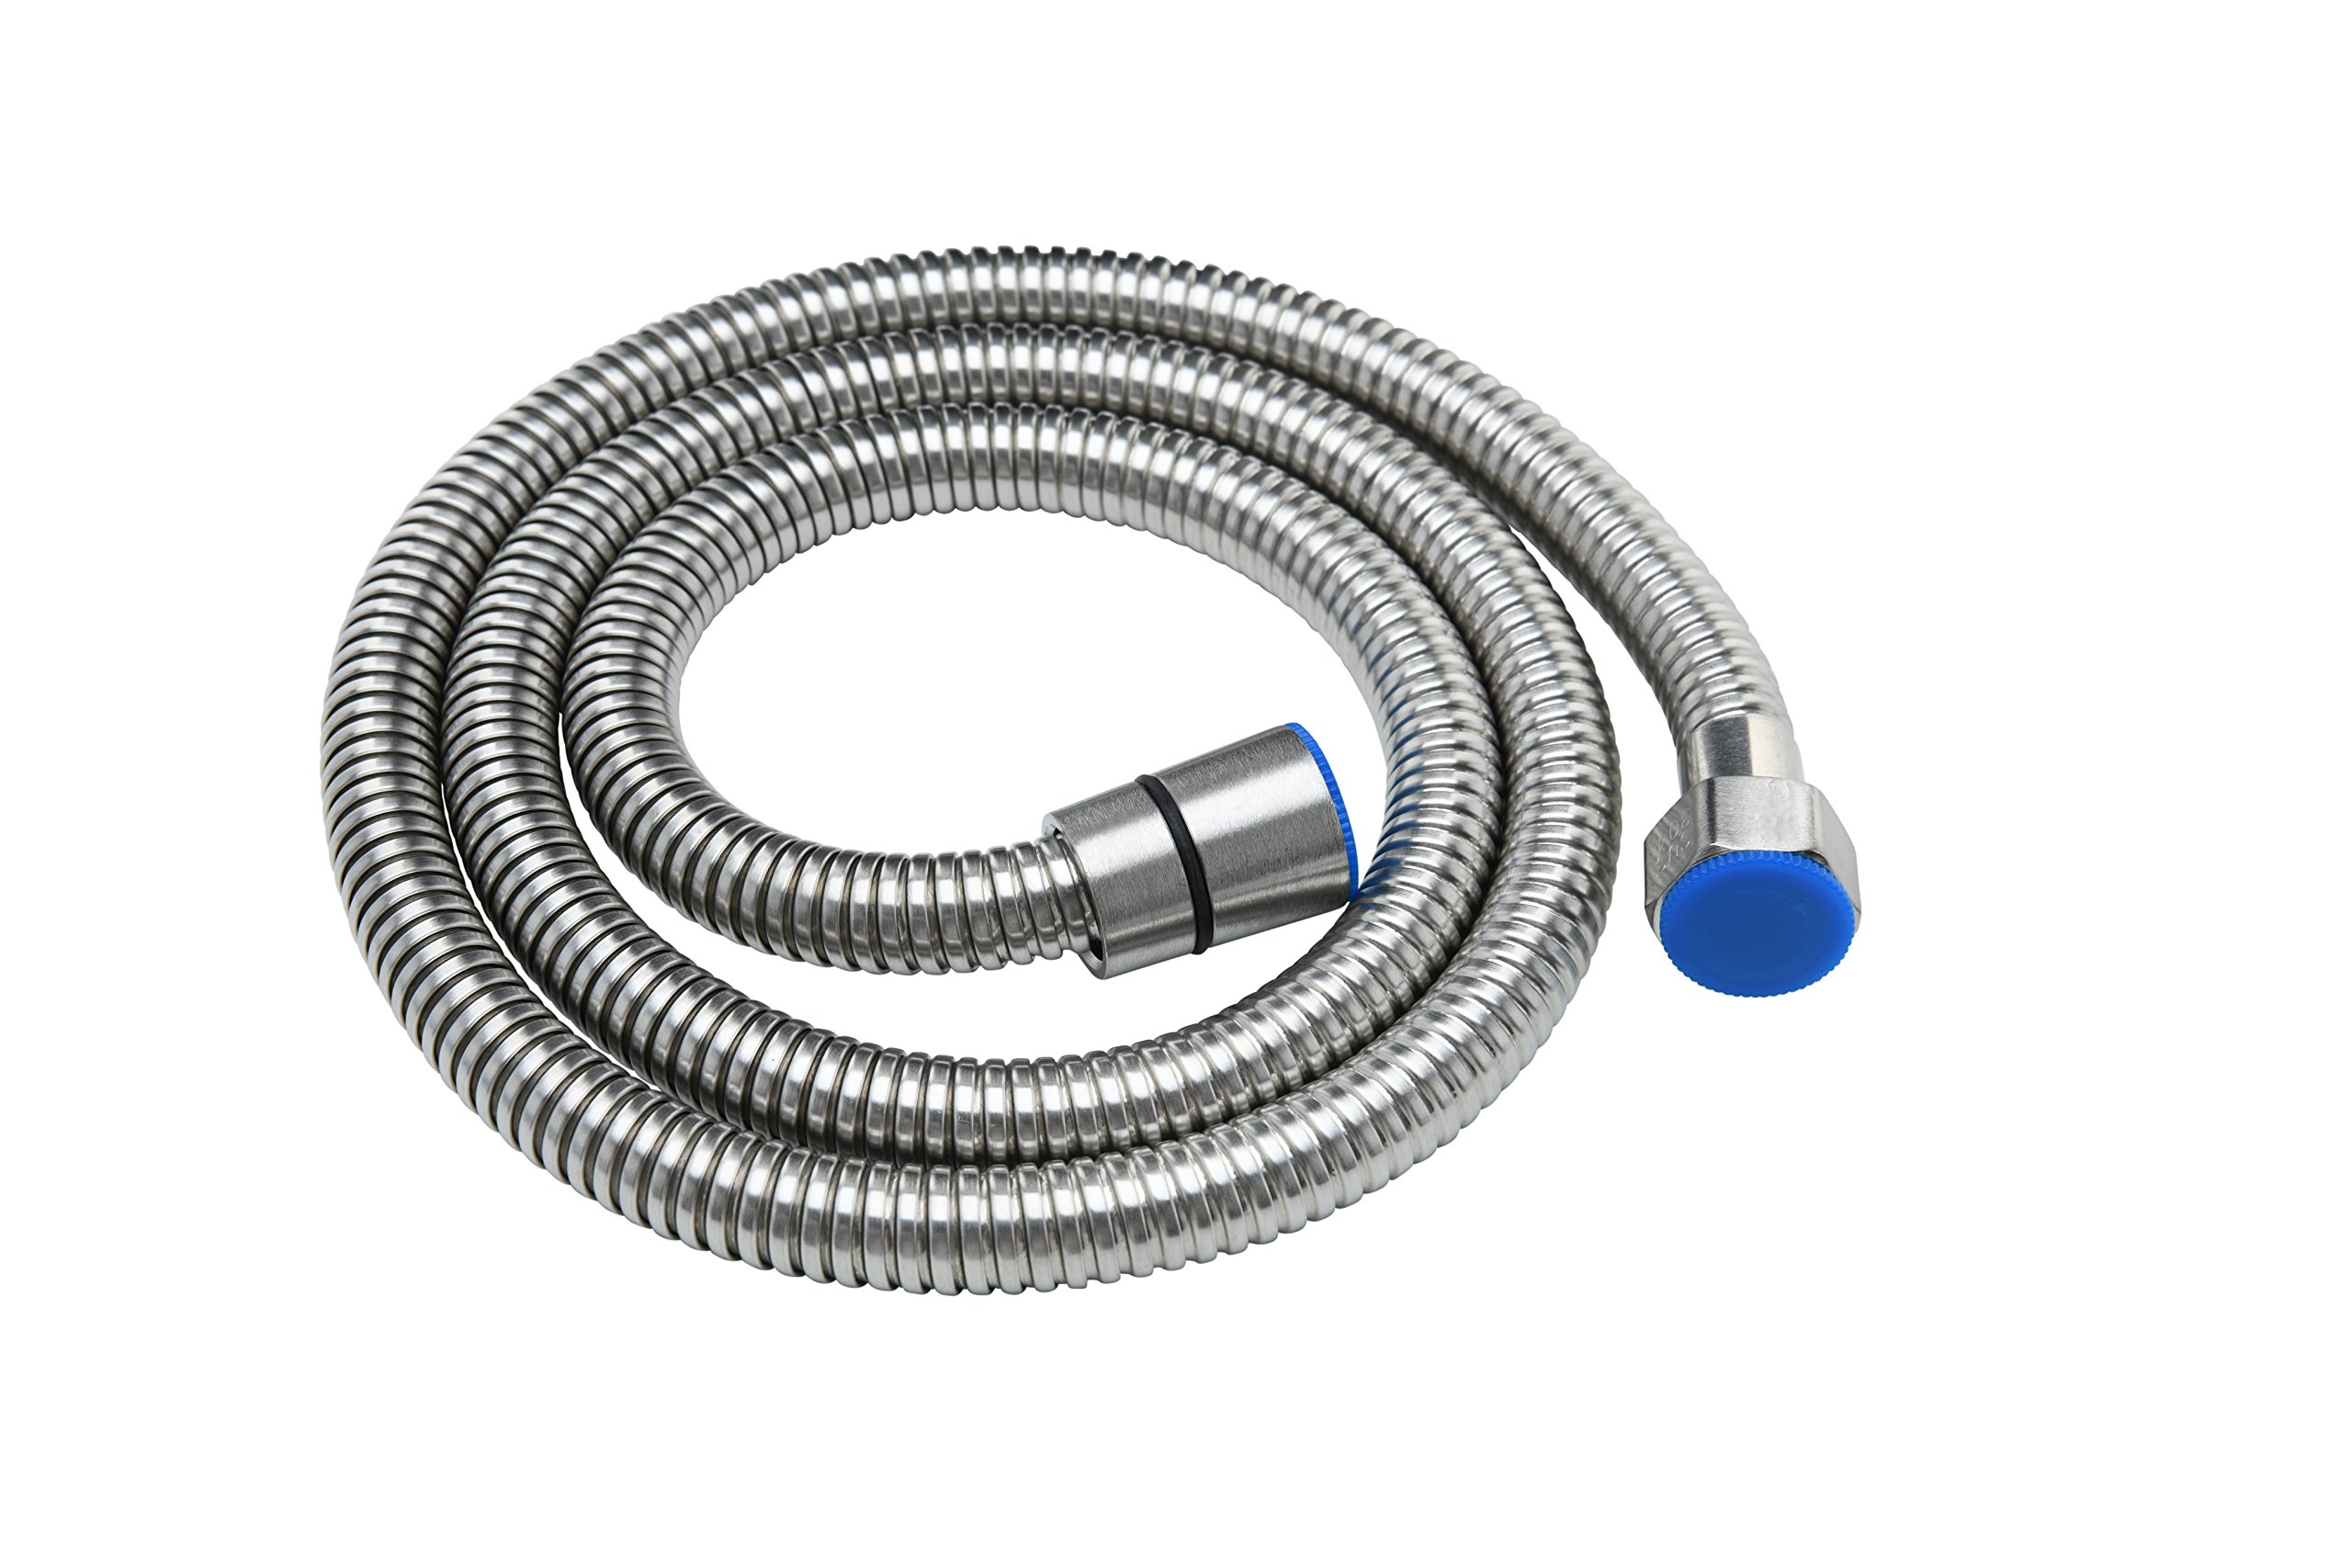 PurrfectZone Brushed Nickel 48-Inch Flexible Metal Stainless Steel Shower Hose/Hose Faucet for Bathroom Toilet Handheld Showerhead Bidet Sprayer Extension & Replacement Part